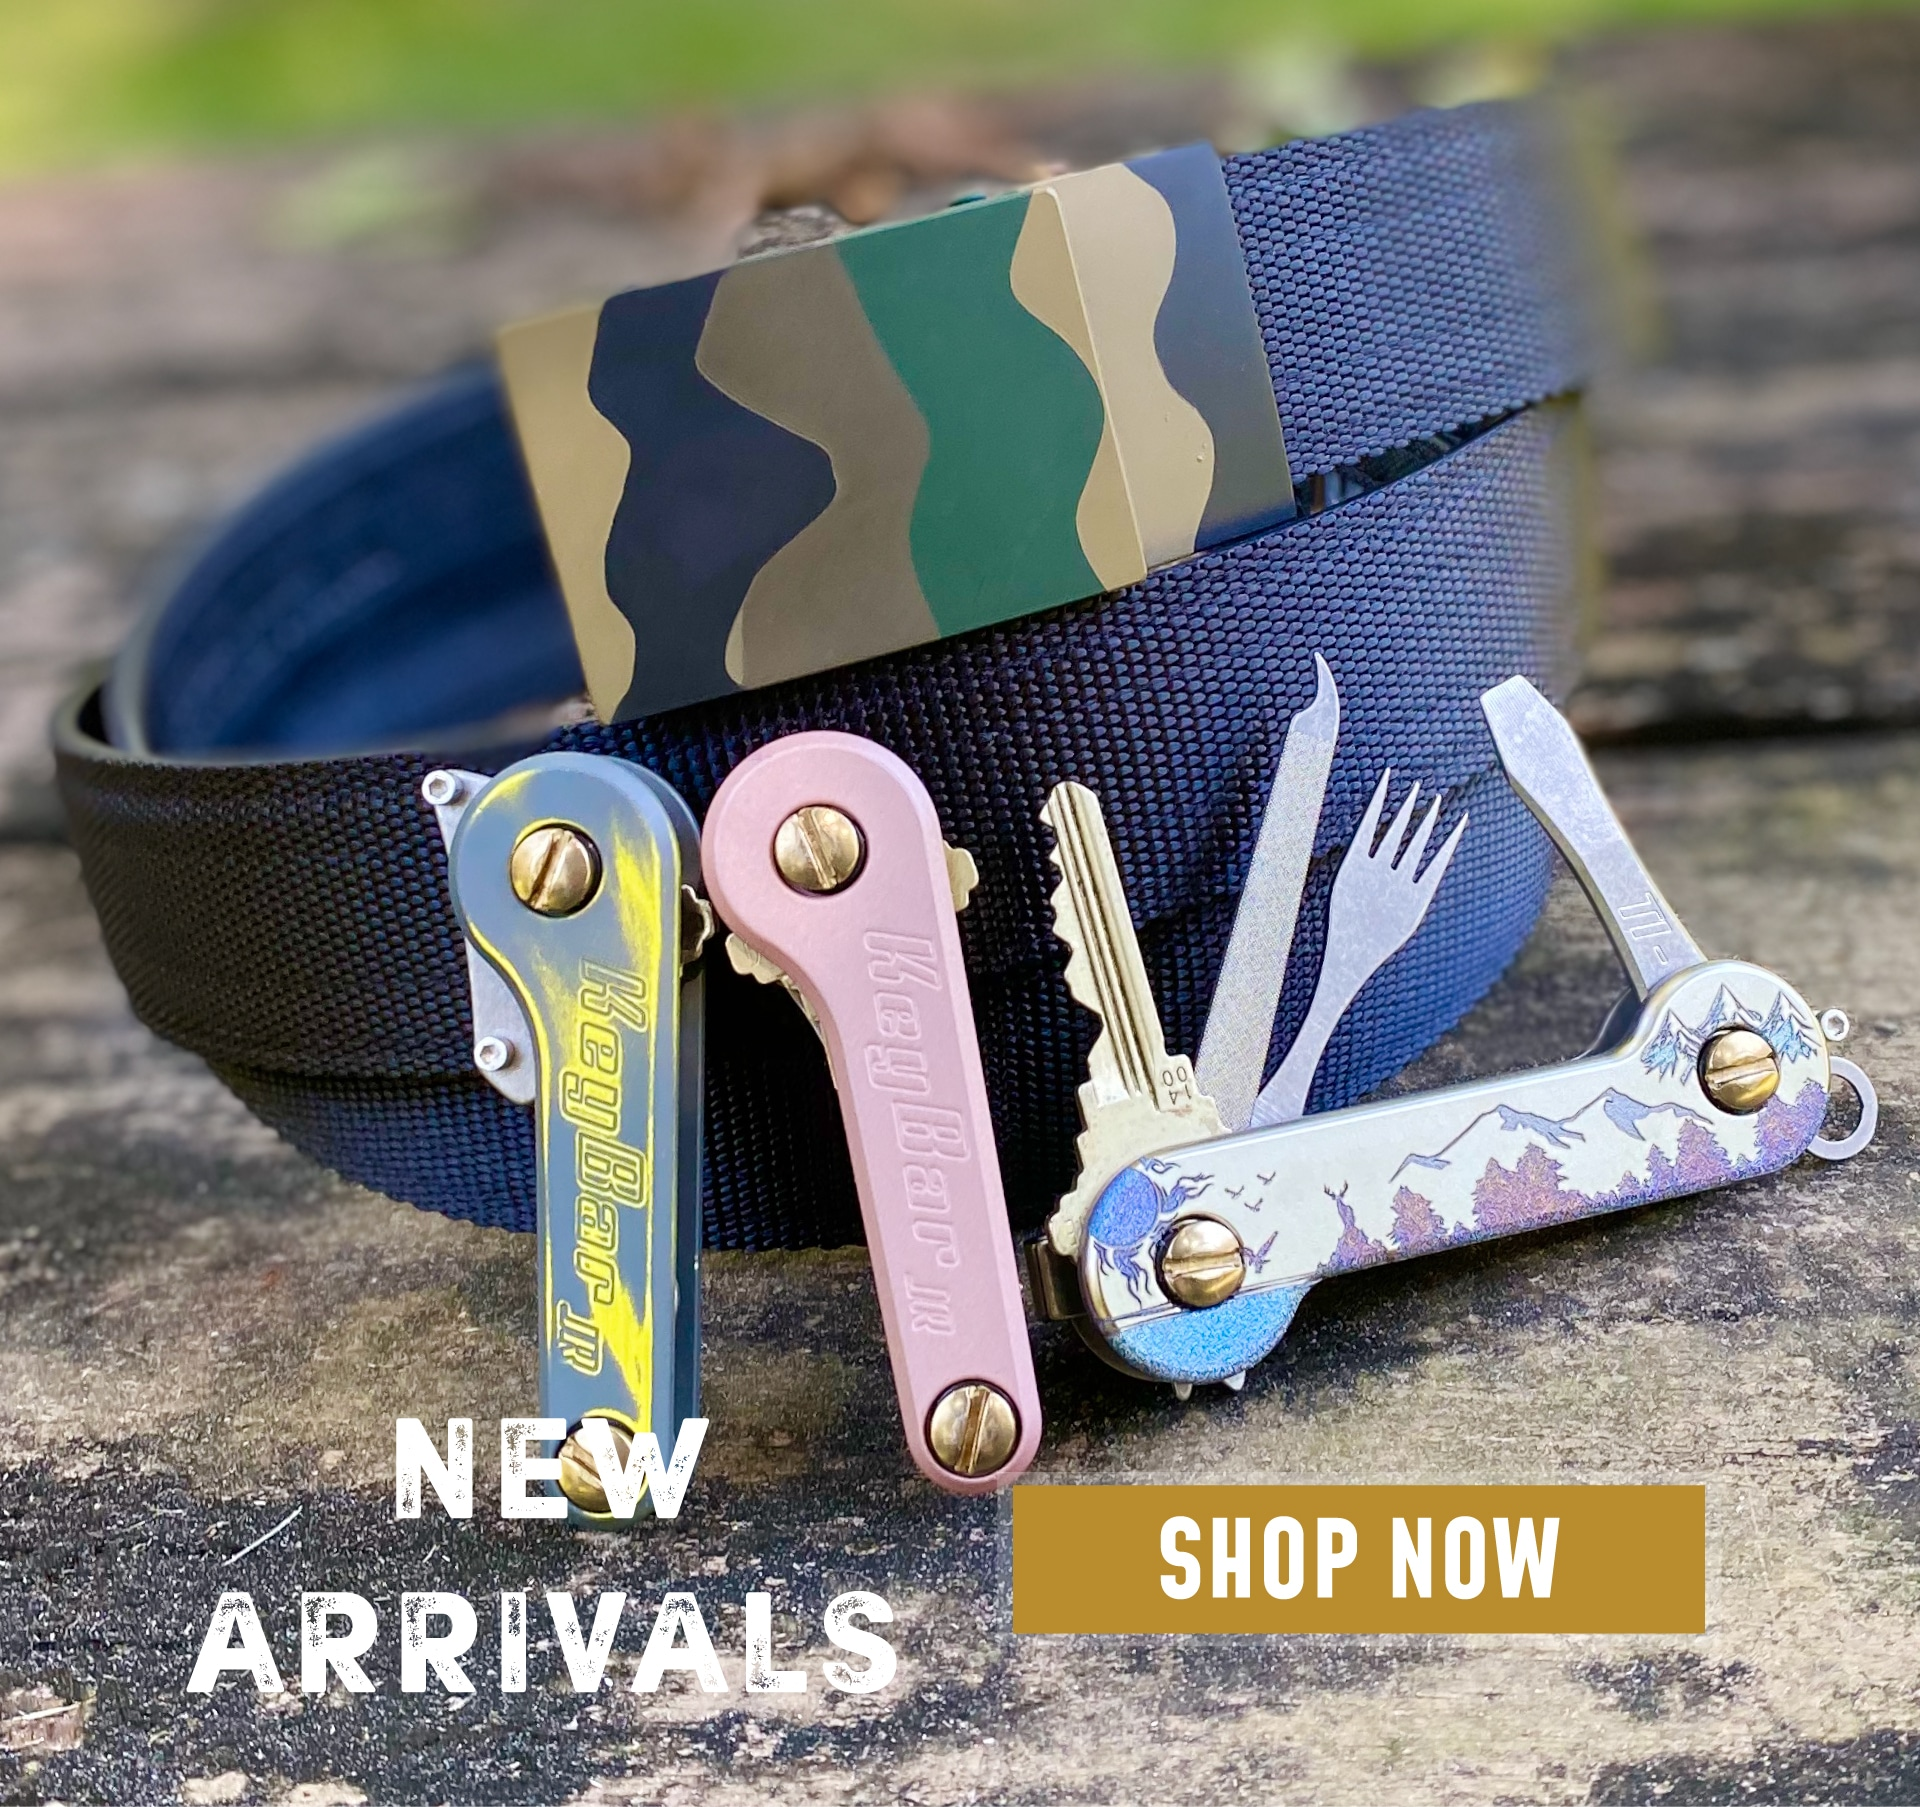 Homepage-Mobile-Image-New-Arrivals-Camo-Quick-Draw-Copper-KeyBar-JR-updated-July-30